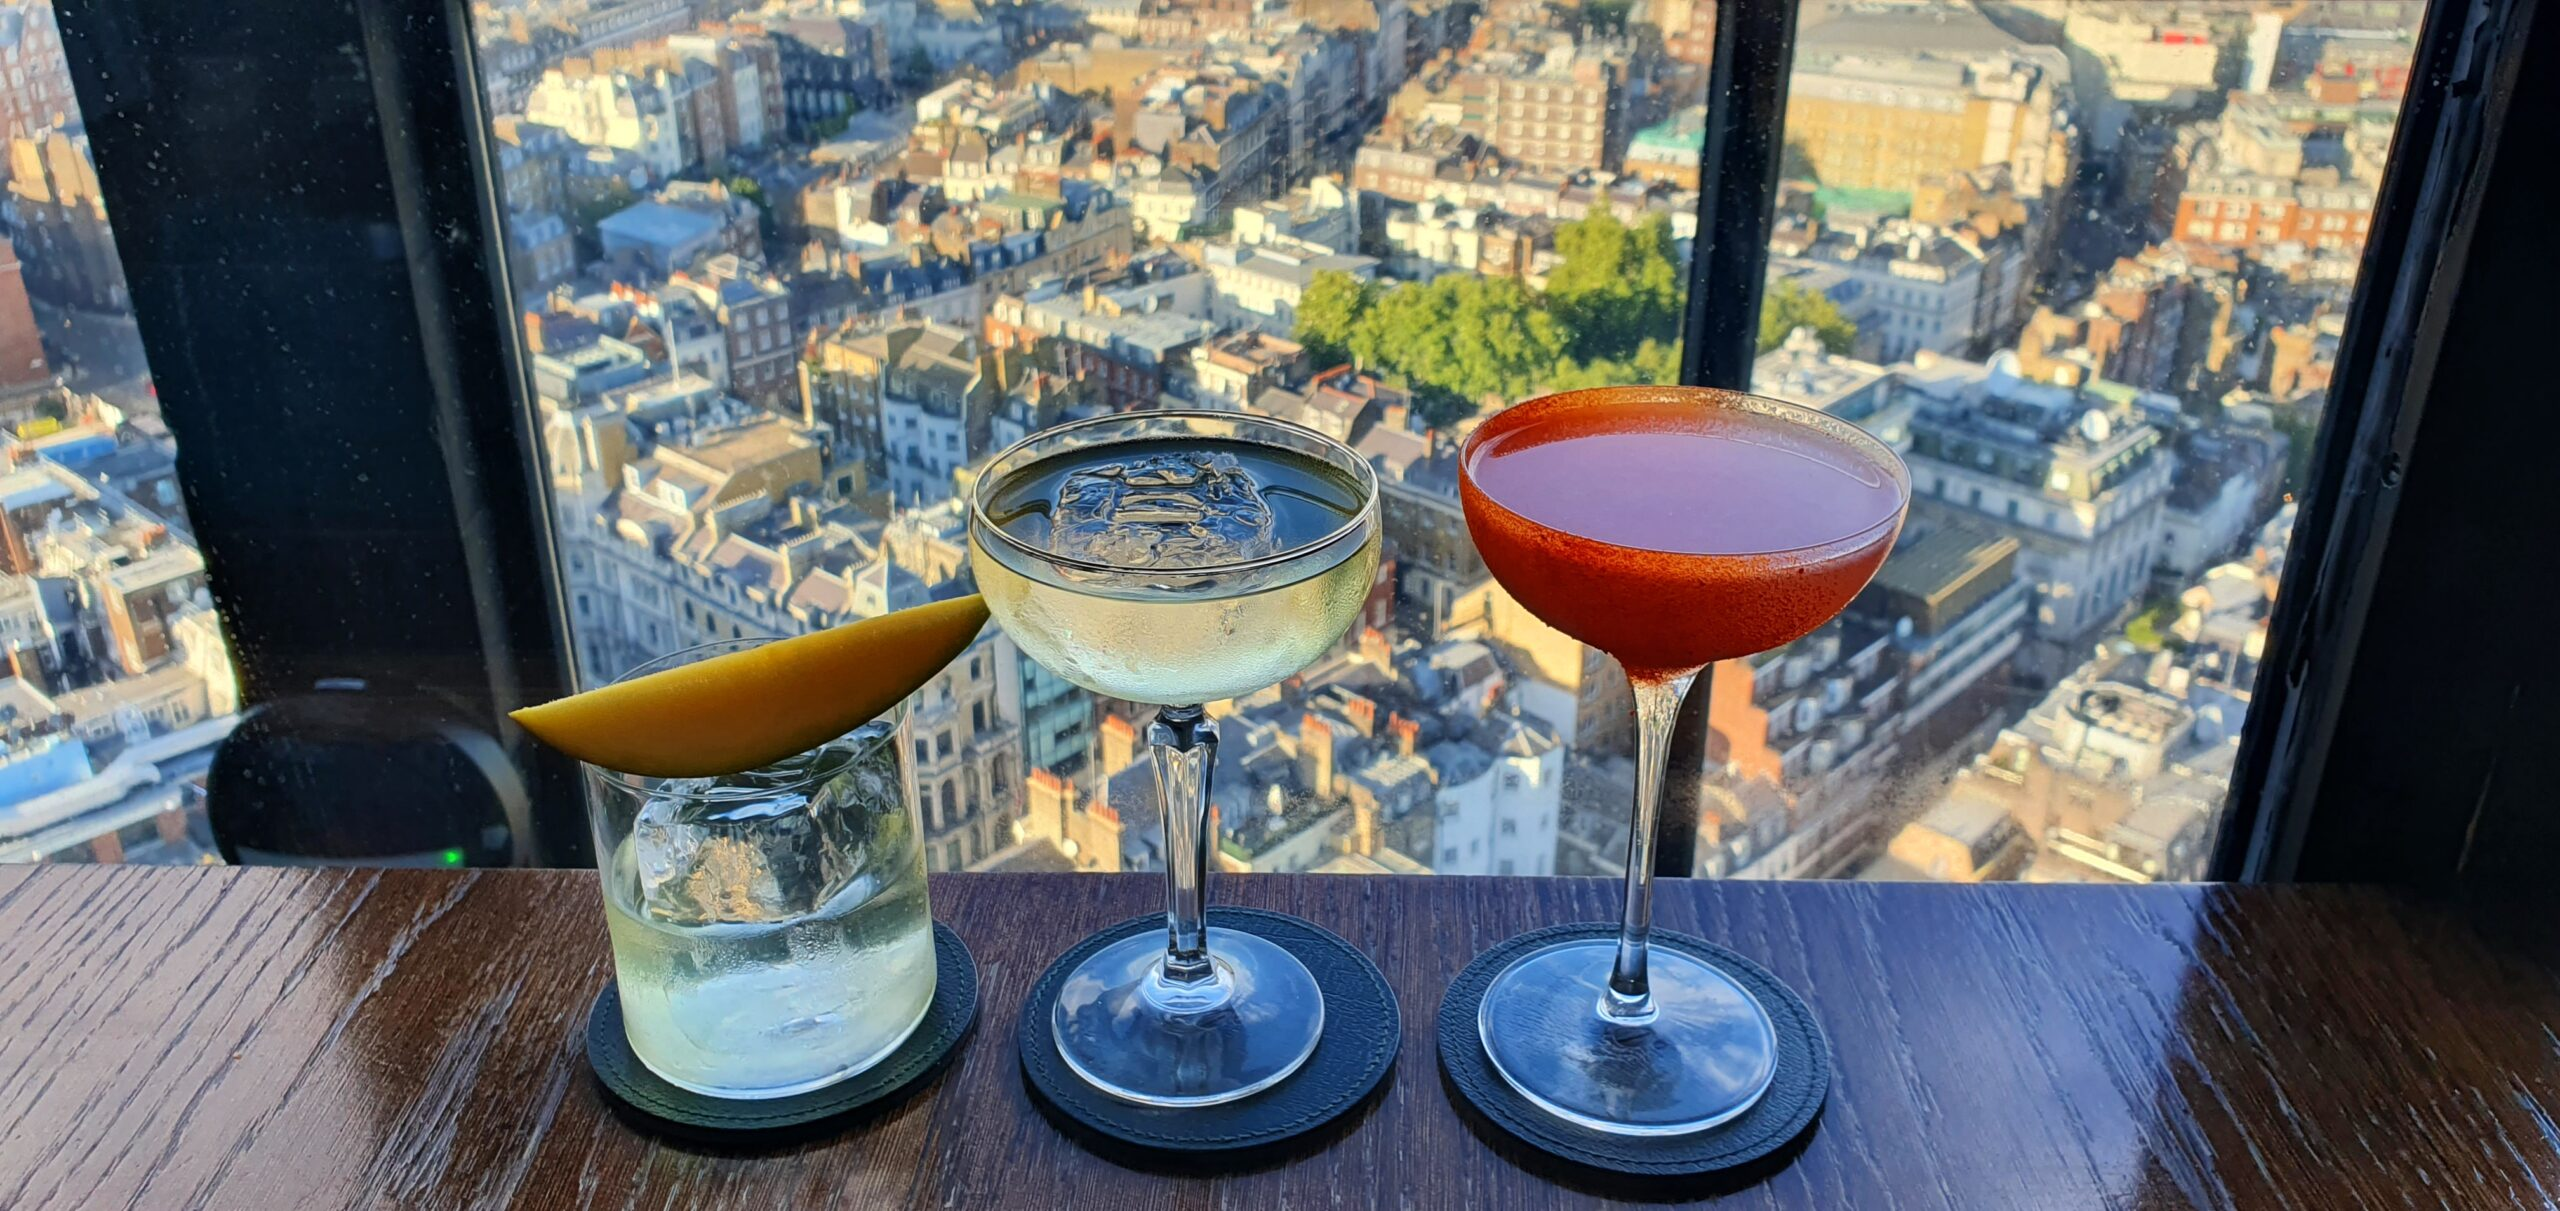 Mayfair's Excellent Dining Experience with Panoramic View